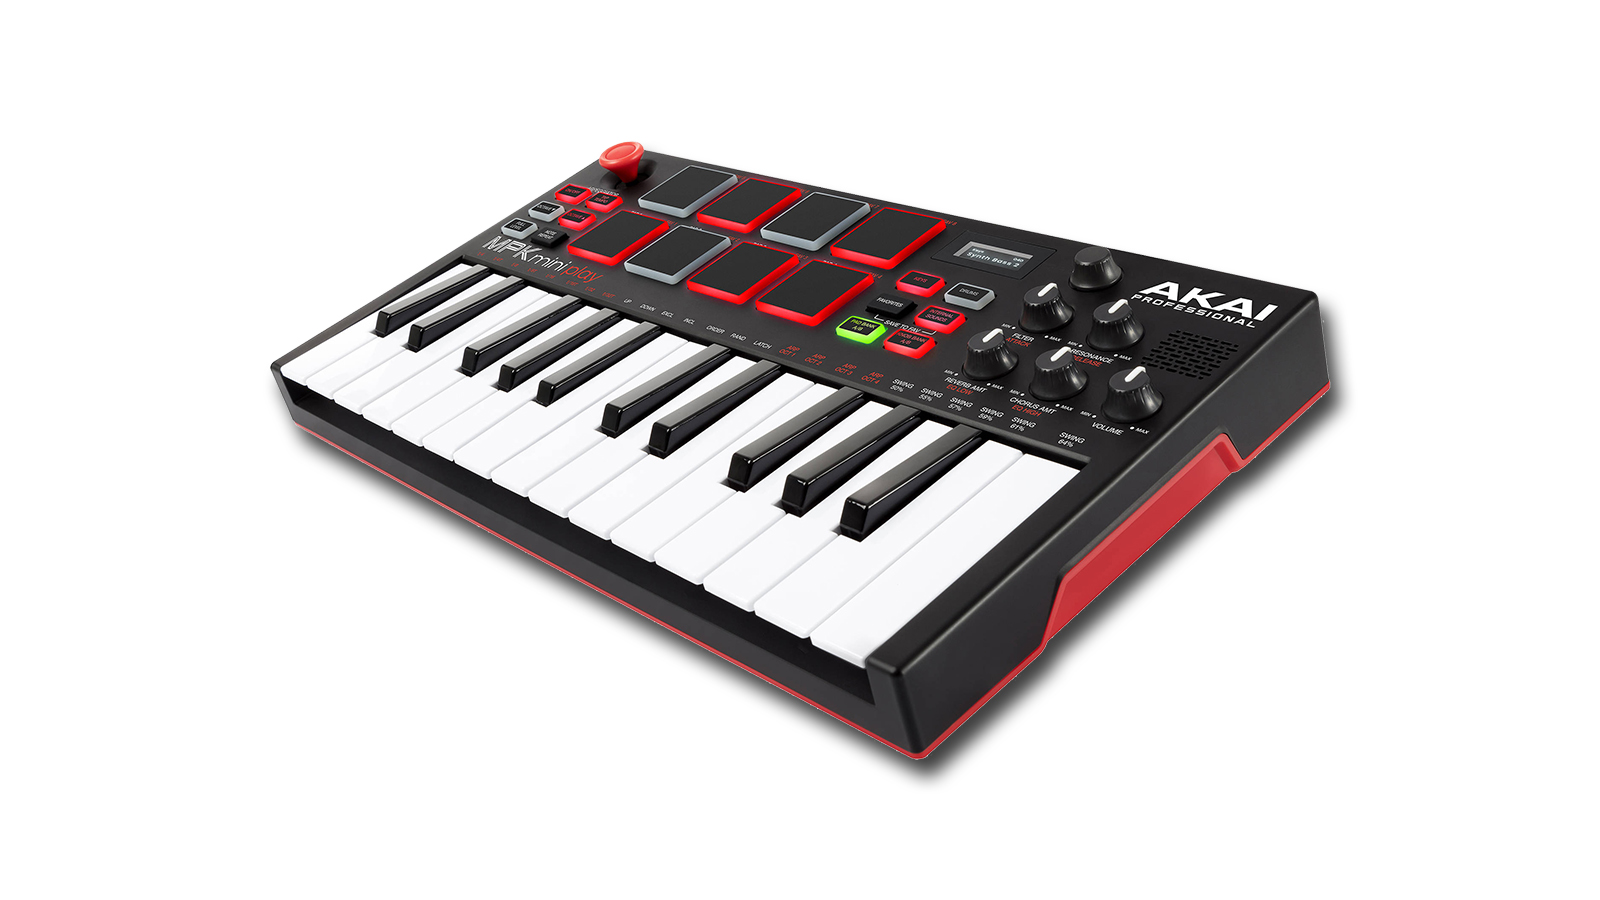 The 10 best cheap MIDI keyboards 2019: wallet-friendly controllers for music making | MusicRadar